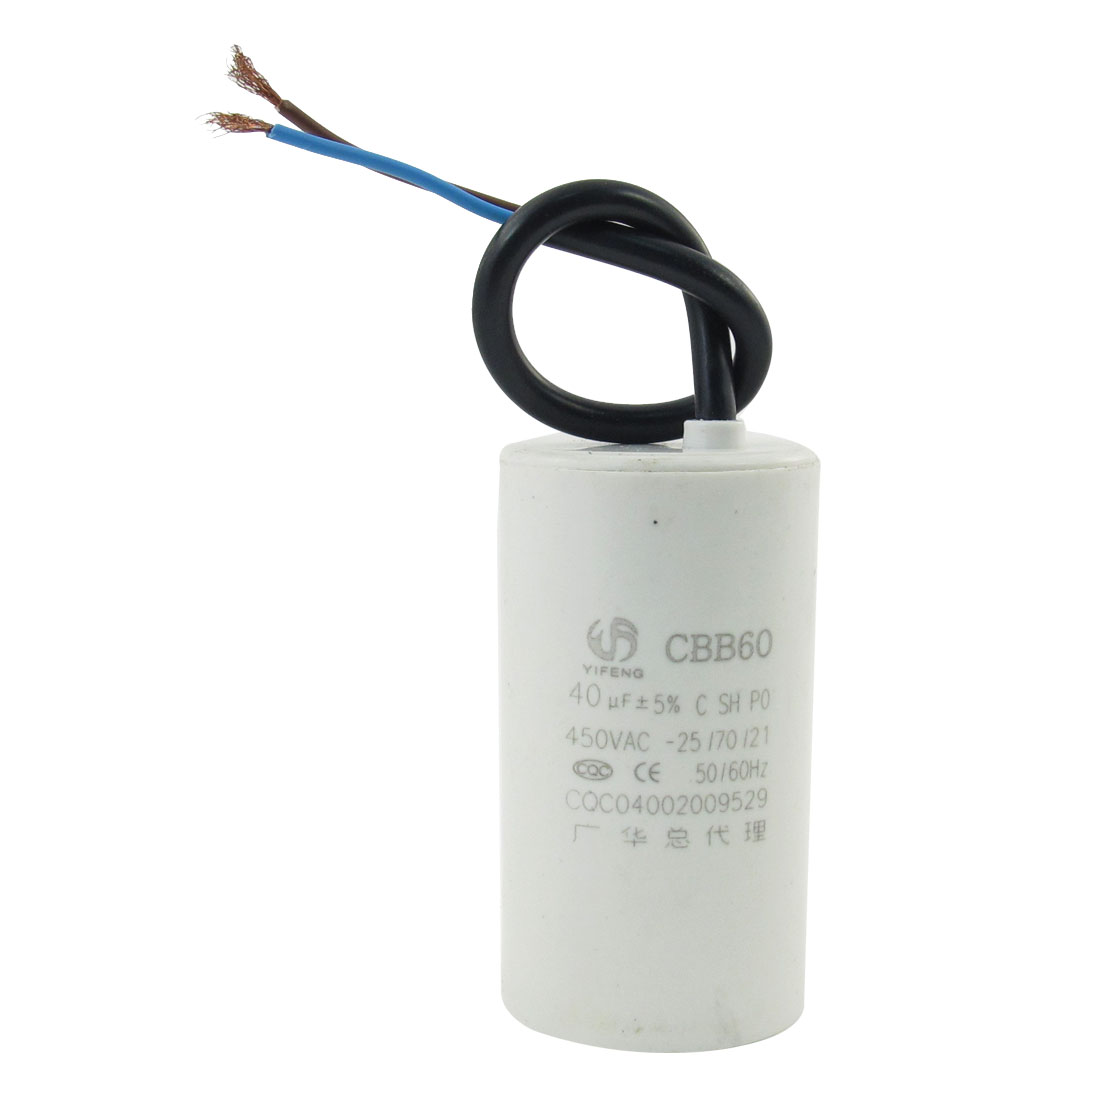 CBB60 40uF 450VAC 50/60HZ Wired Motor Run Capacitor White for Air Conditioner